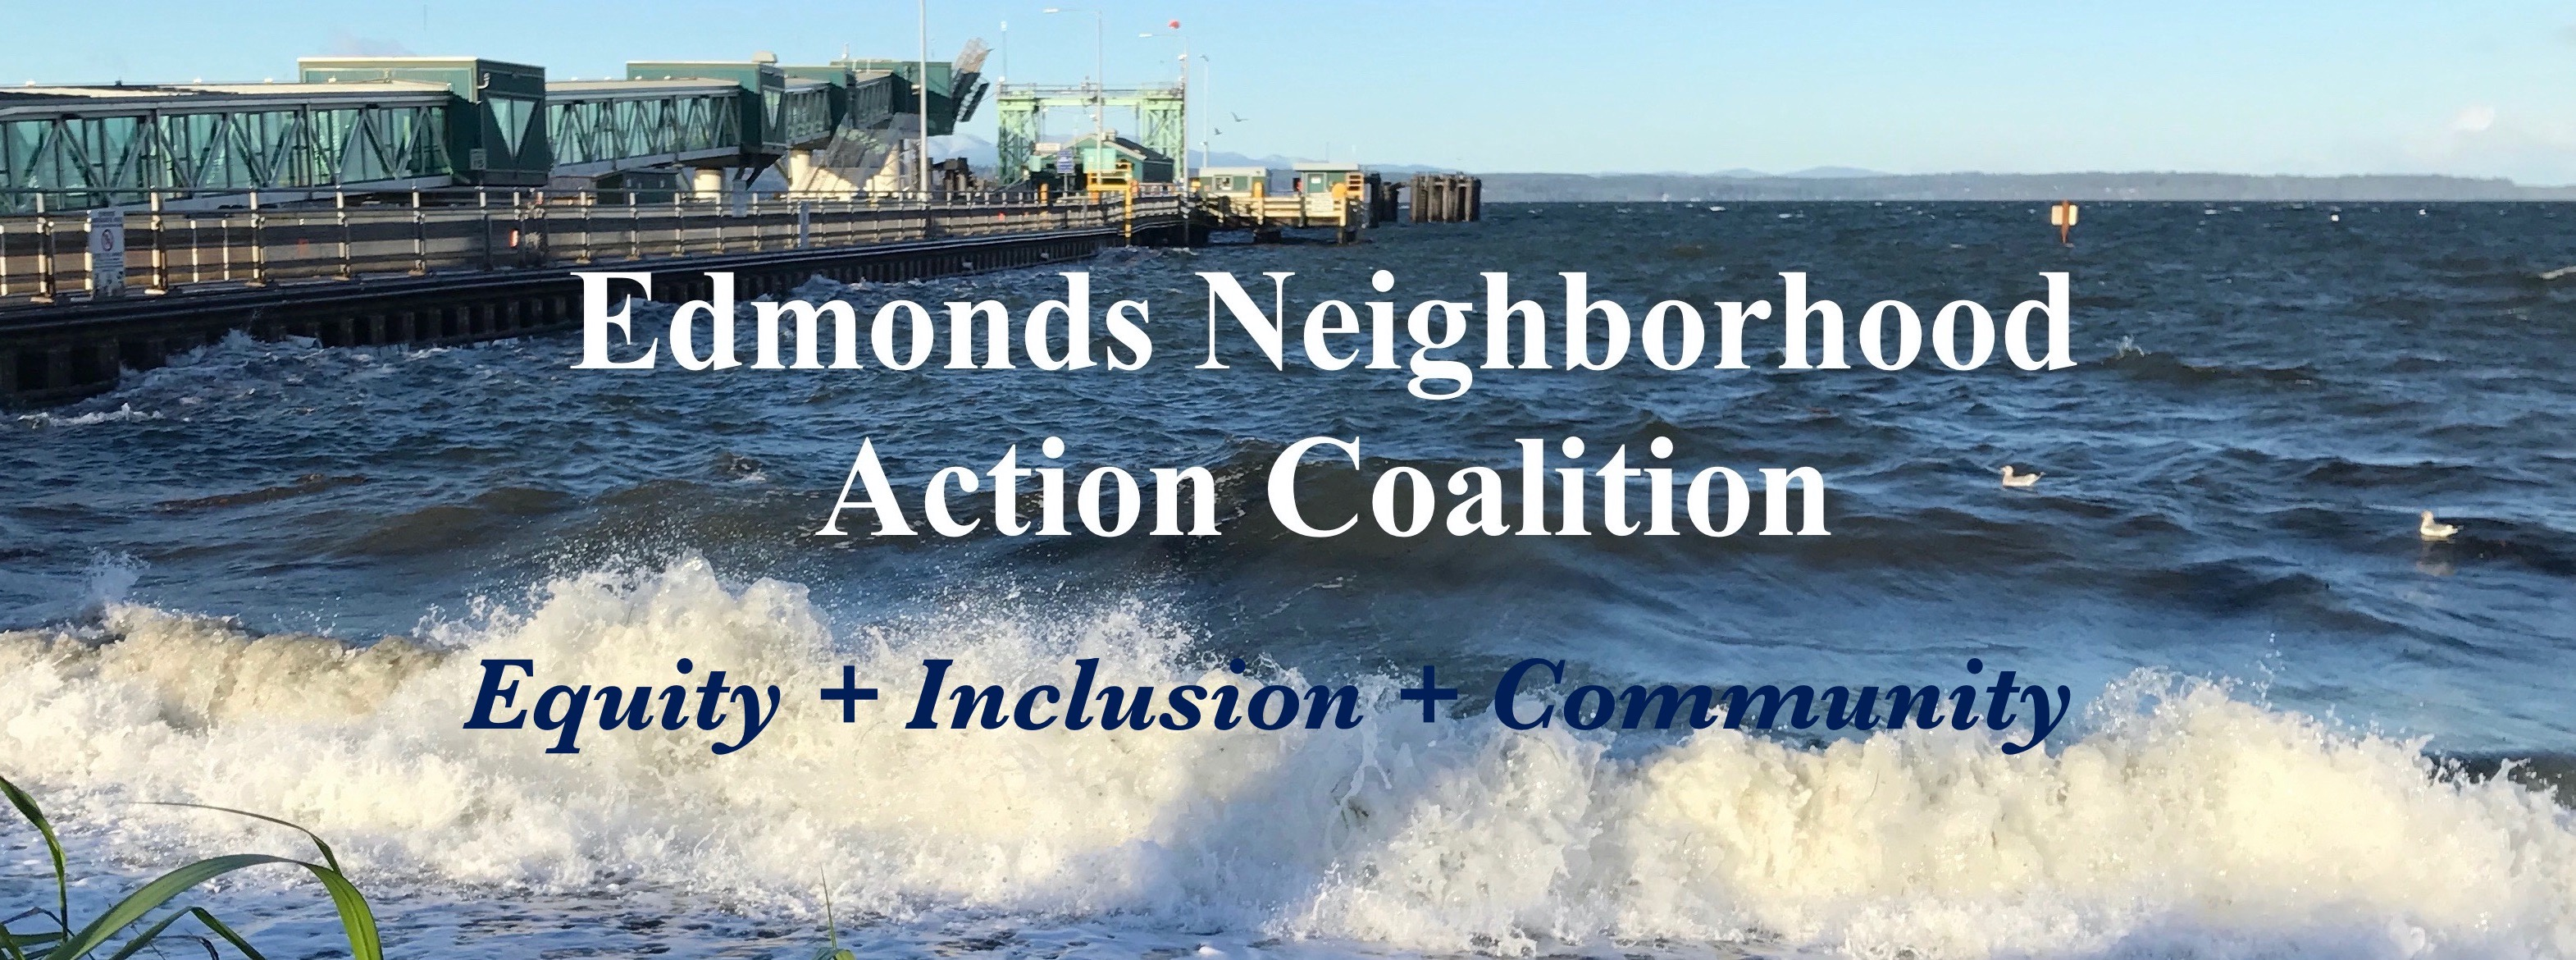 Edmonds Neighborhood Action Coalition